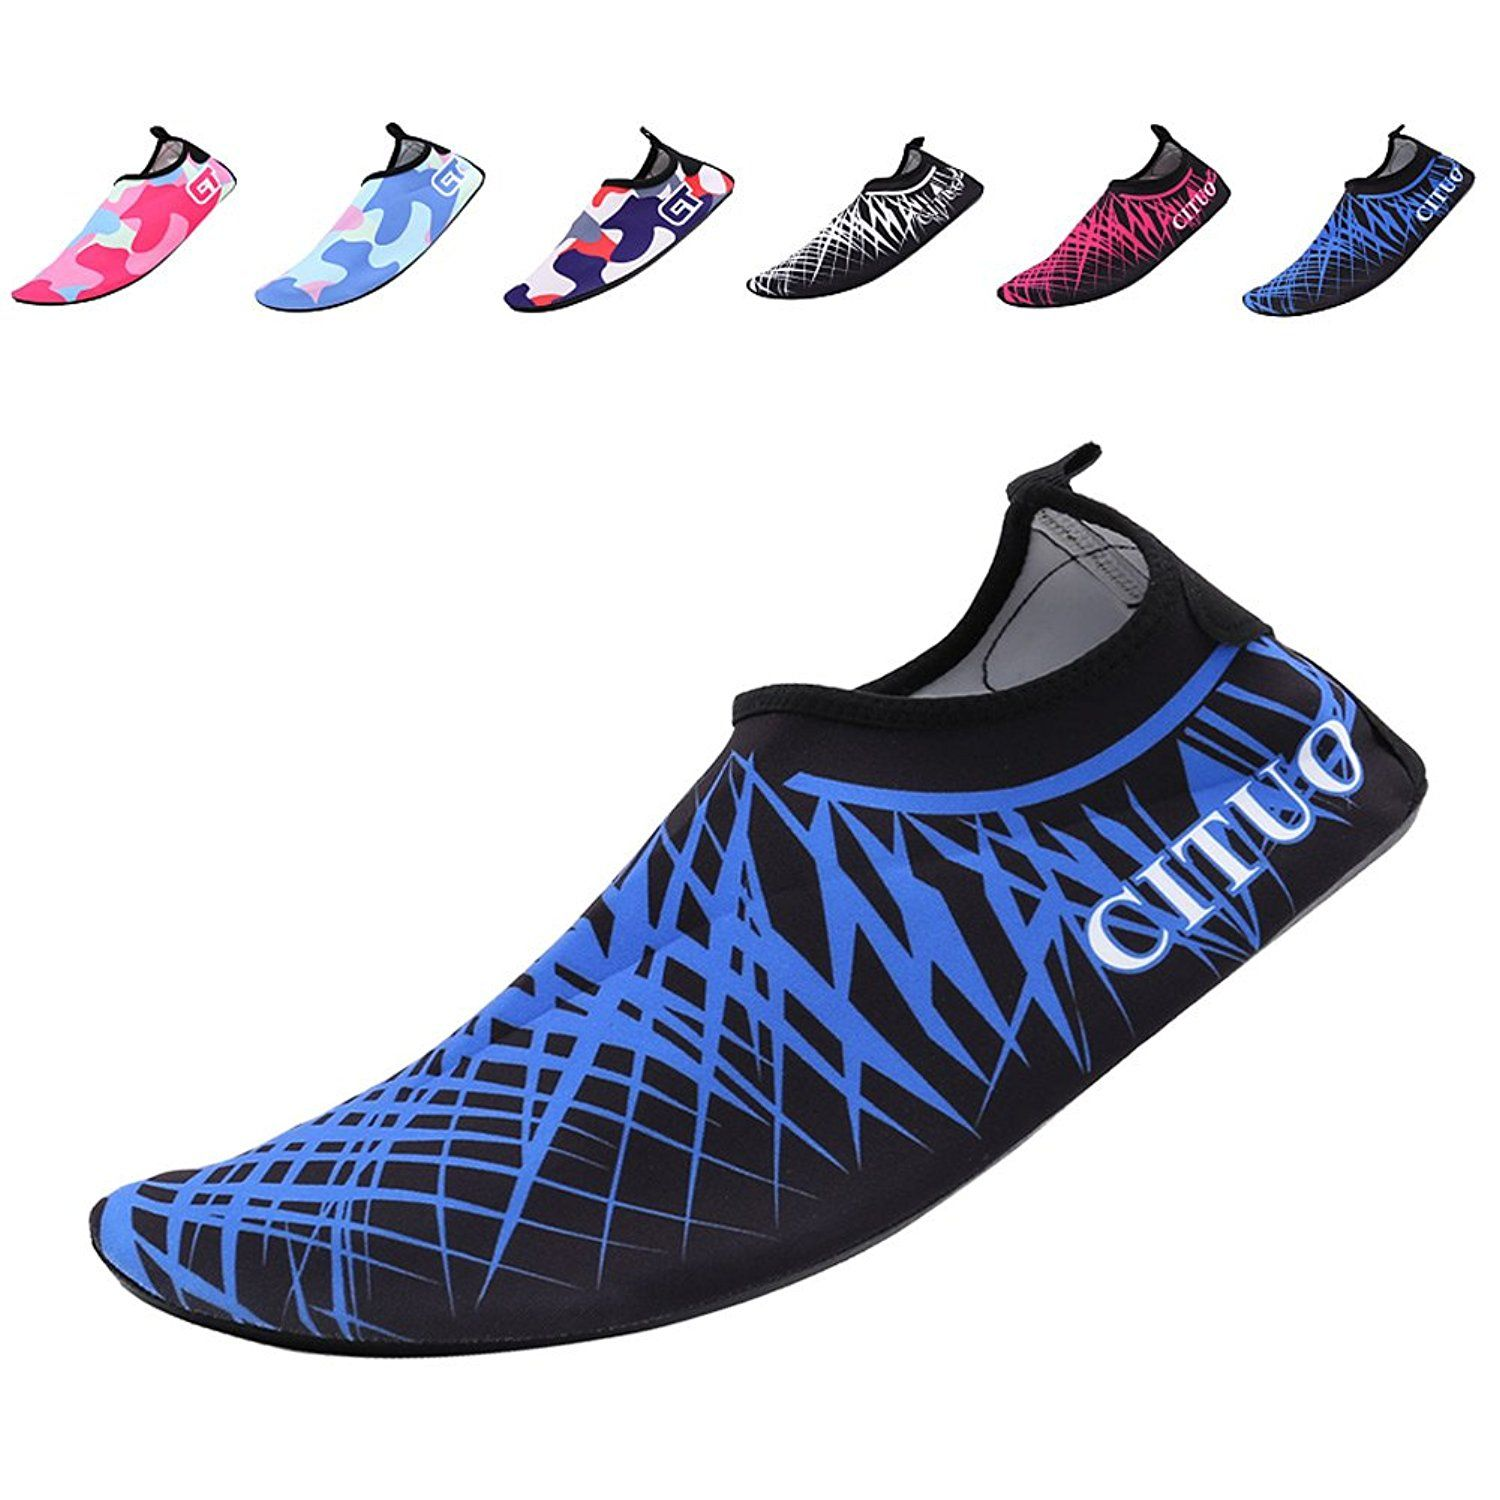 Men Women and Kids Quick-Dry Swim Water Shoes Lightweight Aqua Socks For Beach Pool Surf Yoga Exercise on SALE